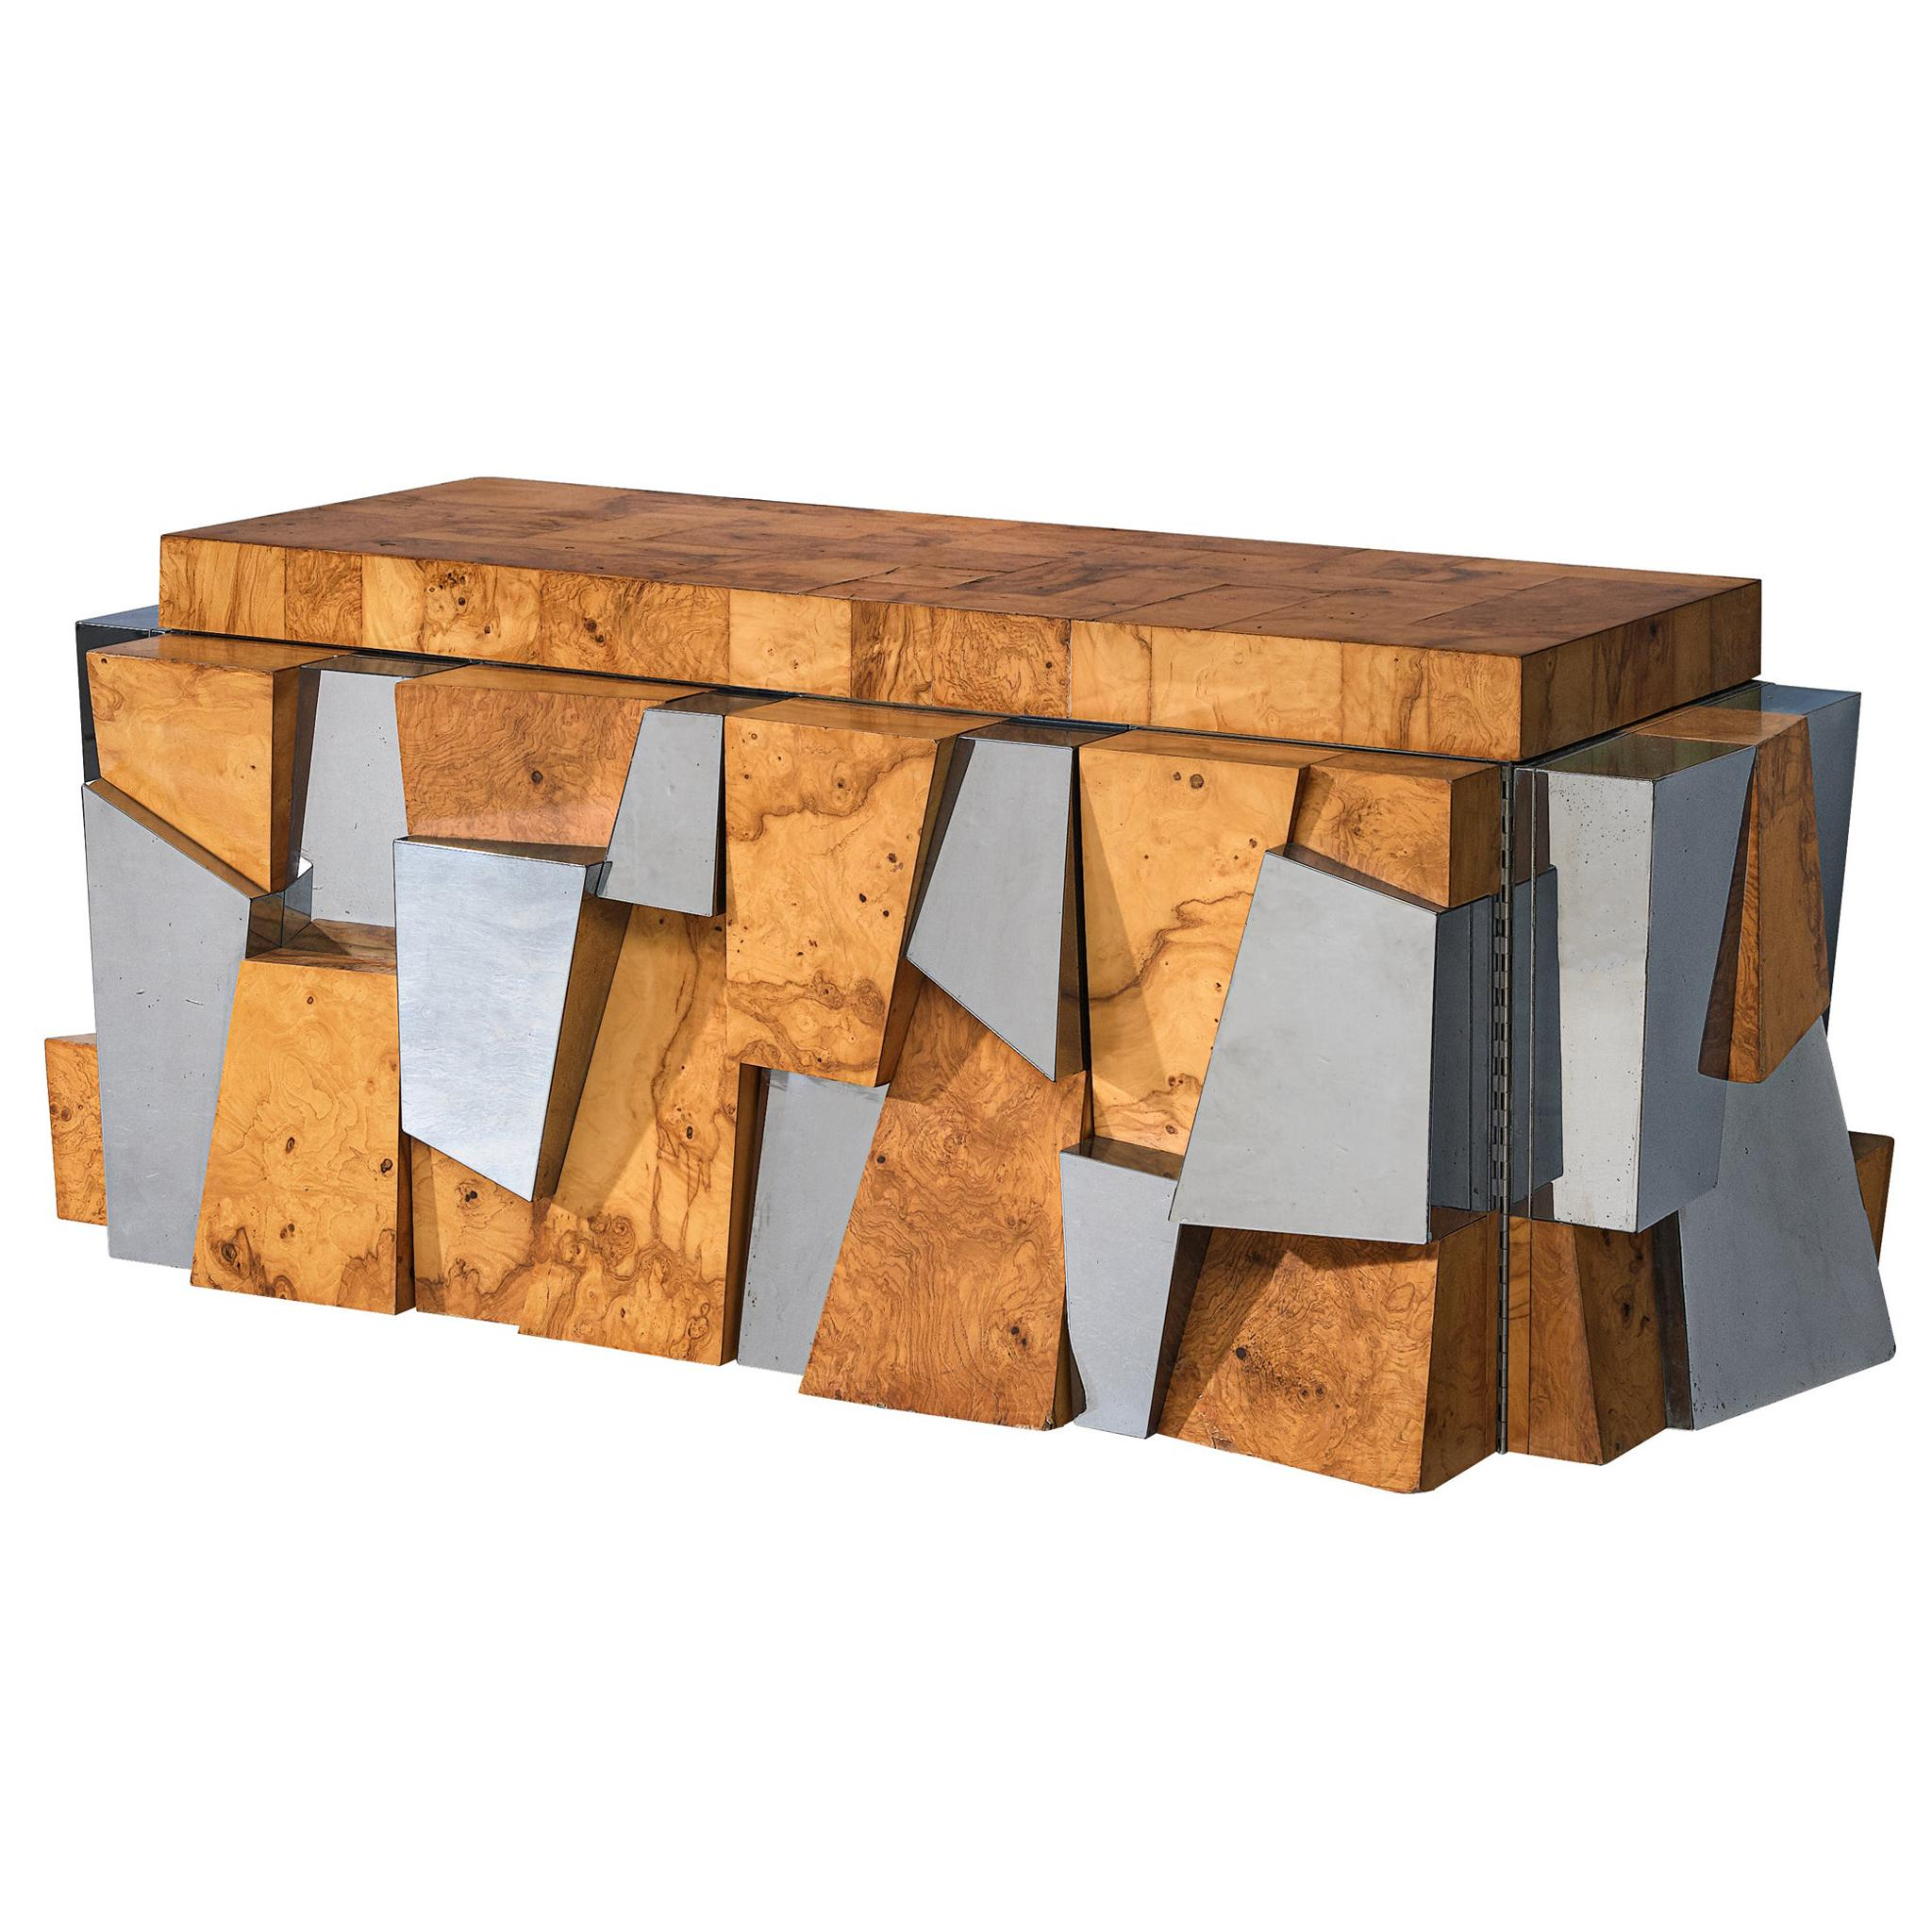 Paul Evans 'Faceted' Wall-Mounted Sideboard in Chrome and Burl